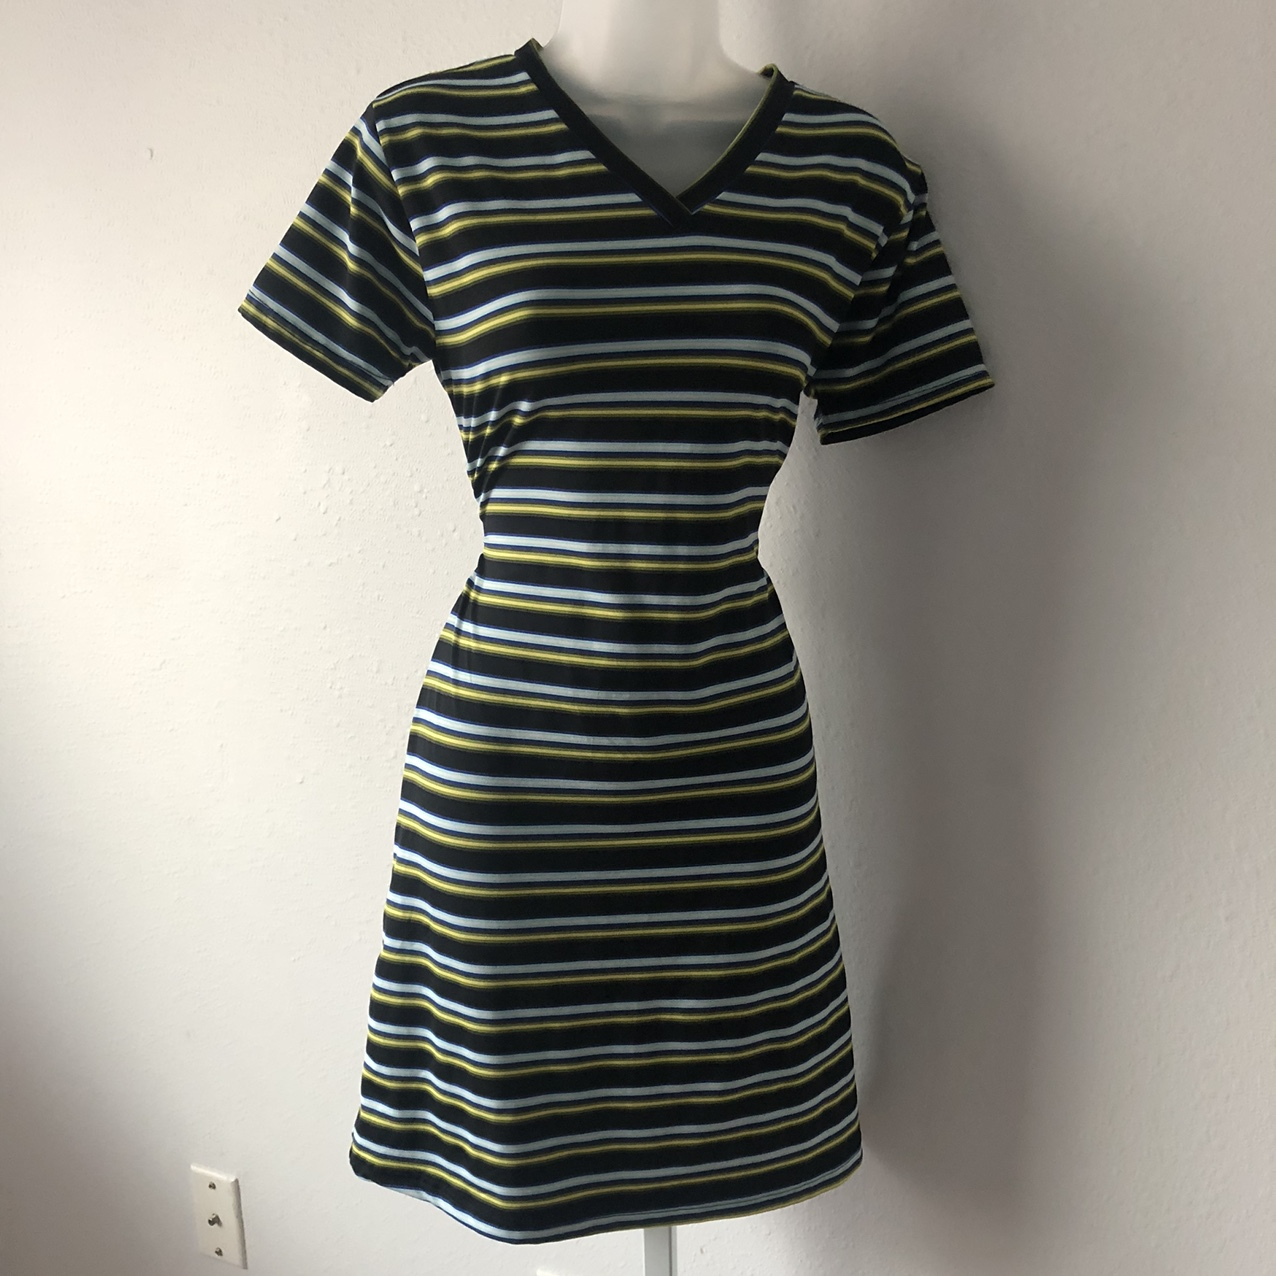 Product Image 1 - Perfect 90s Striped T-shirt Dress  This